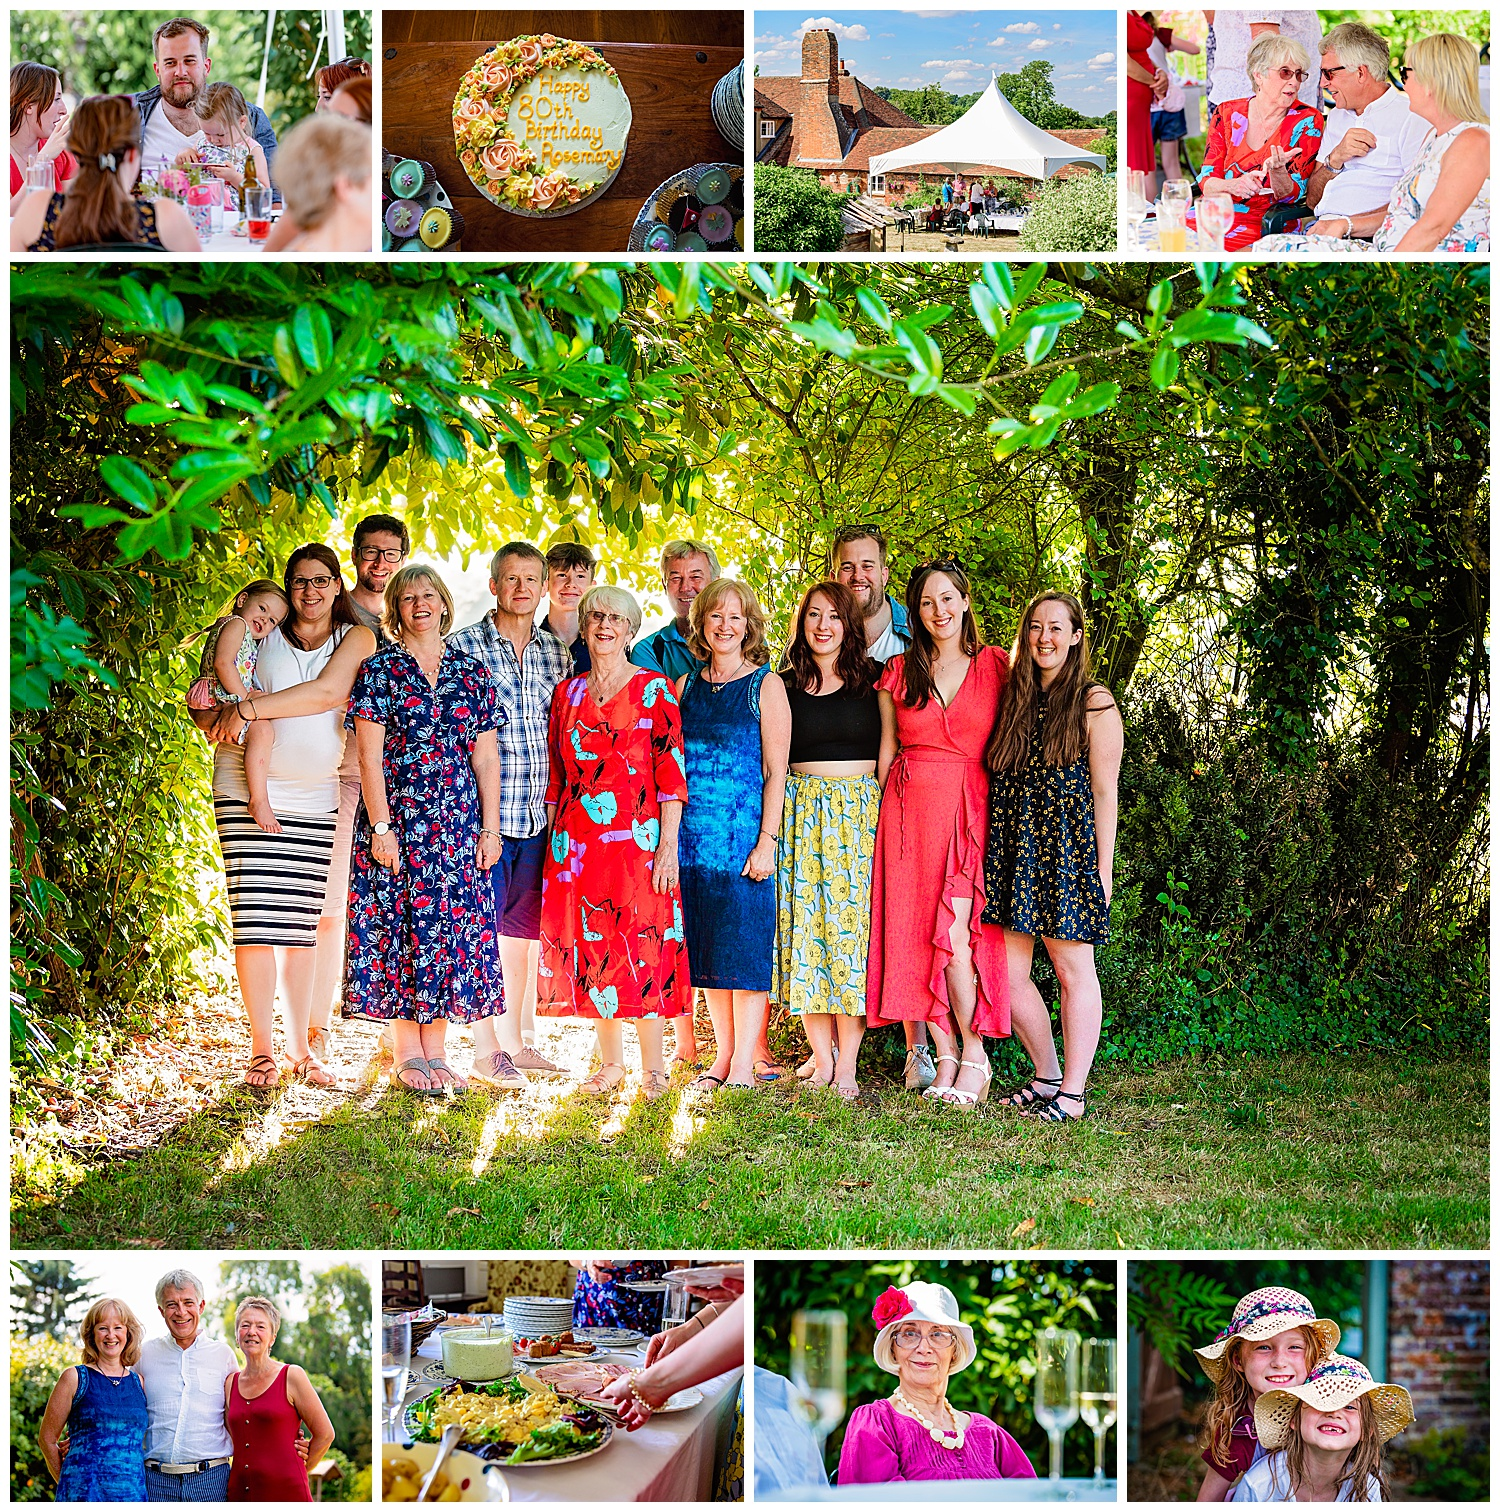 Montage of party images by Party Photographer Alexandra Tandy Photography. Taken at an 80th Birthday party